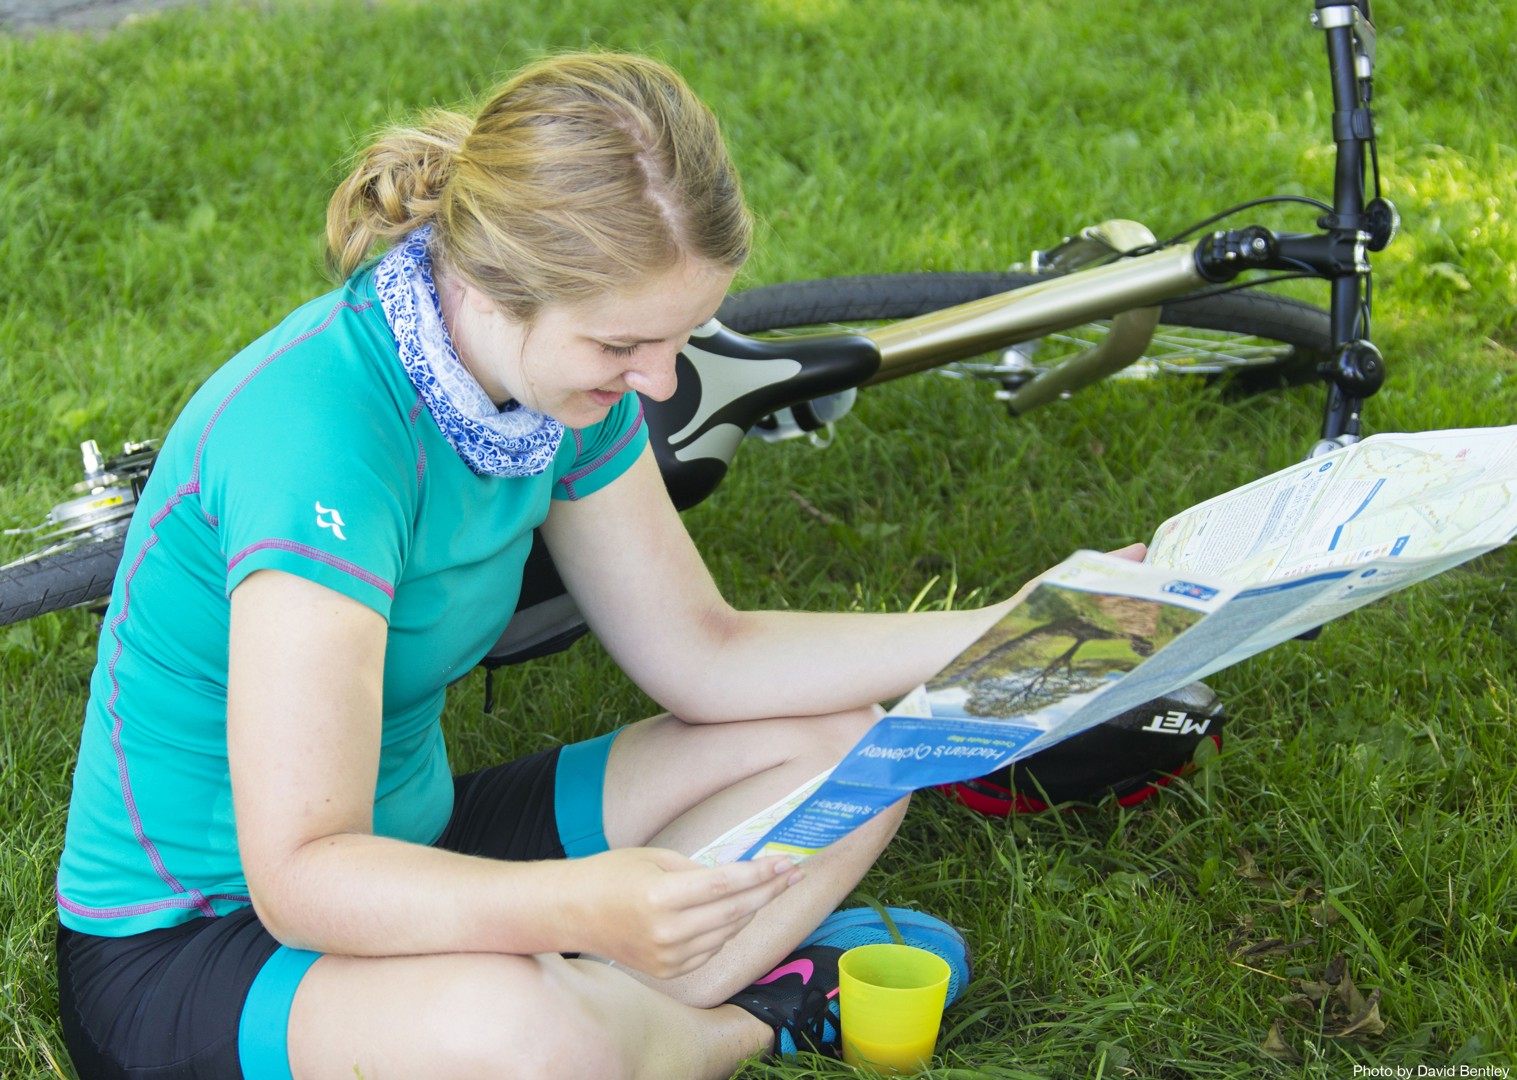 Self-Guided-Leisure-Cycling-Holiday-Hadrians-Cycleway-UK-maps.jpg - UK - Hadrian's Cycleway - 4 Days Cycling - Self-Guided Leisure Cycling Holiday - Leisure Cycling